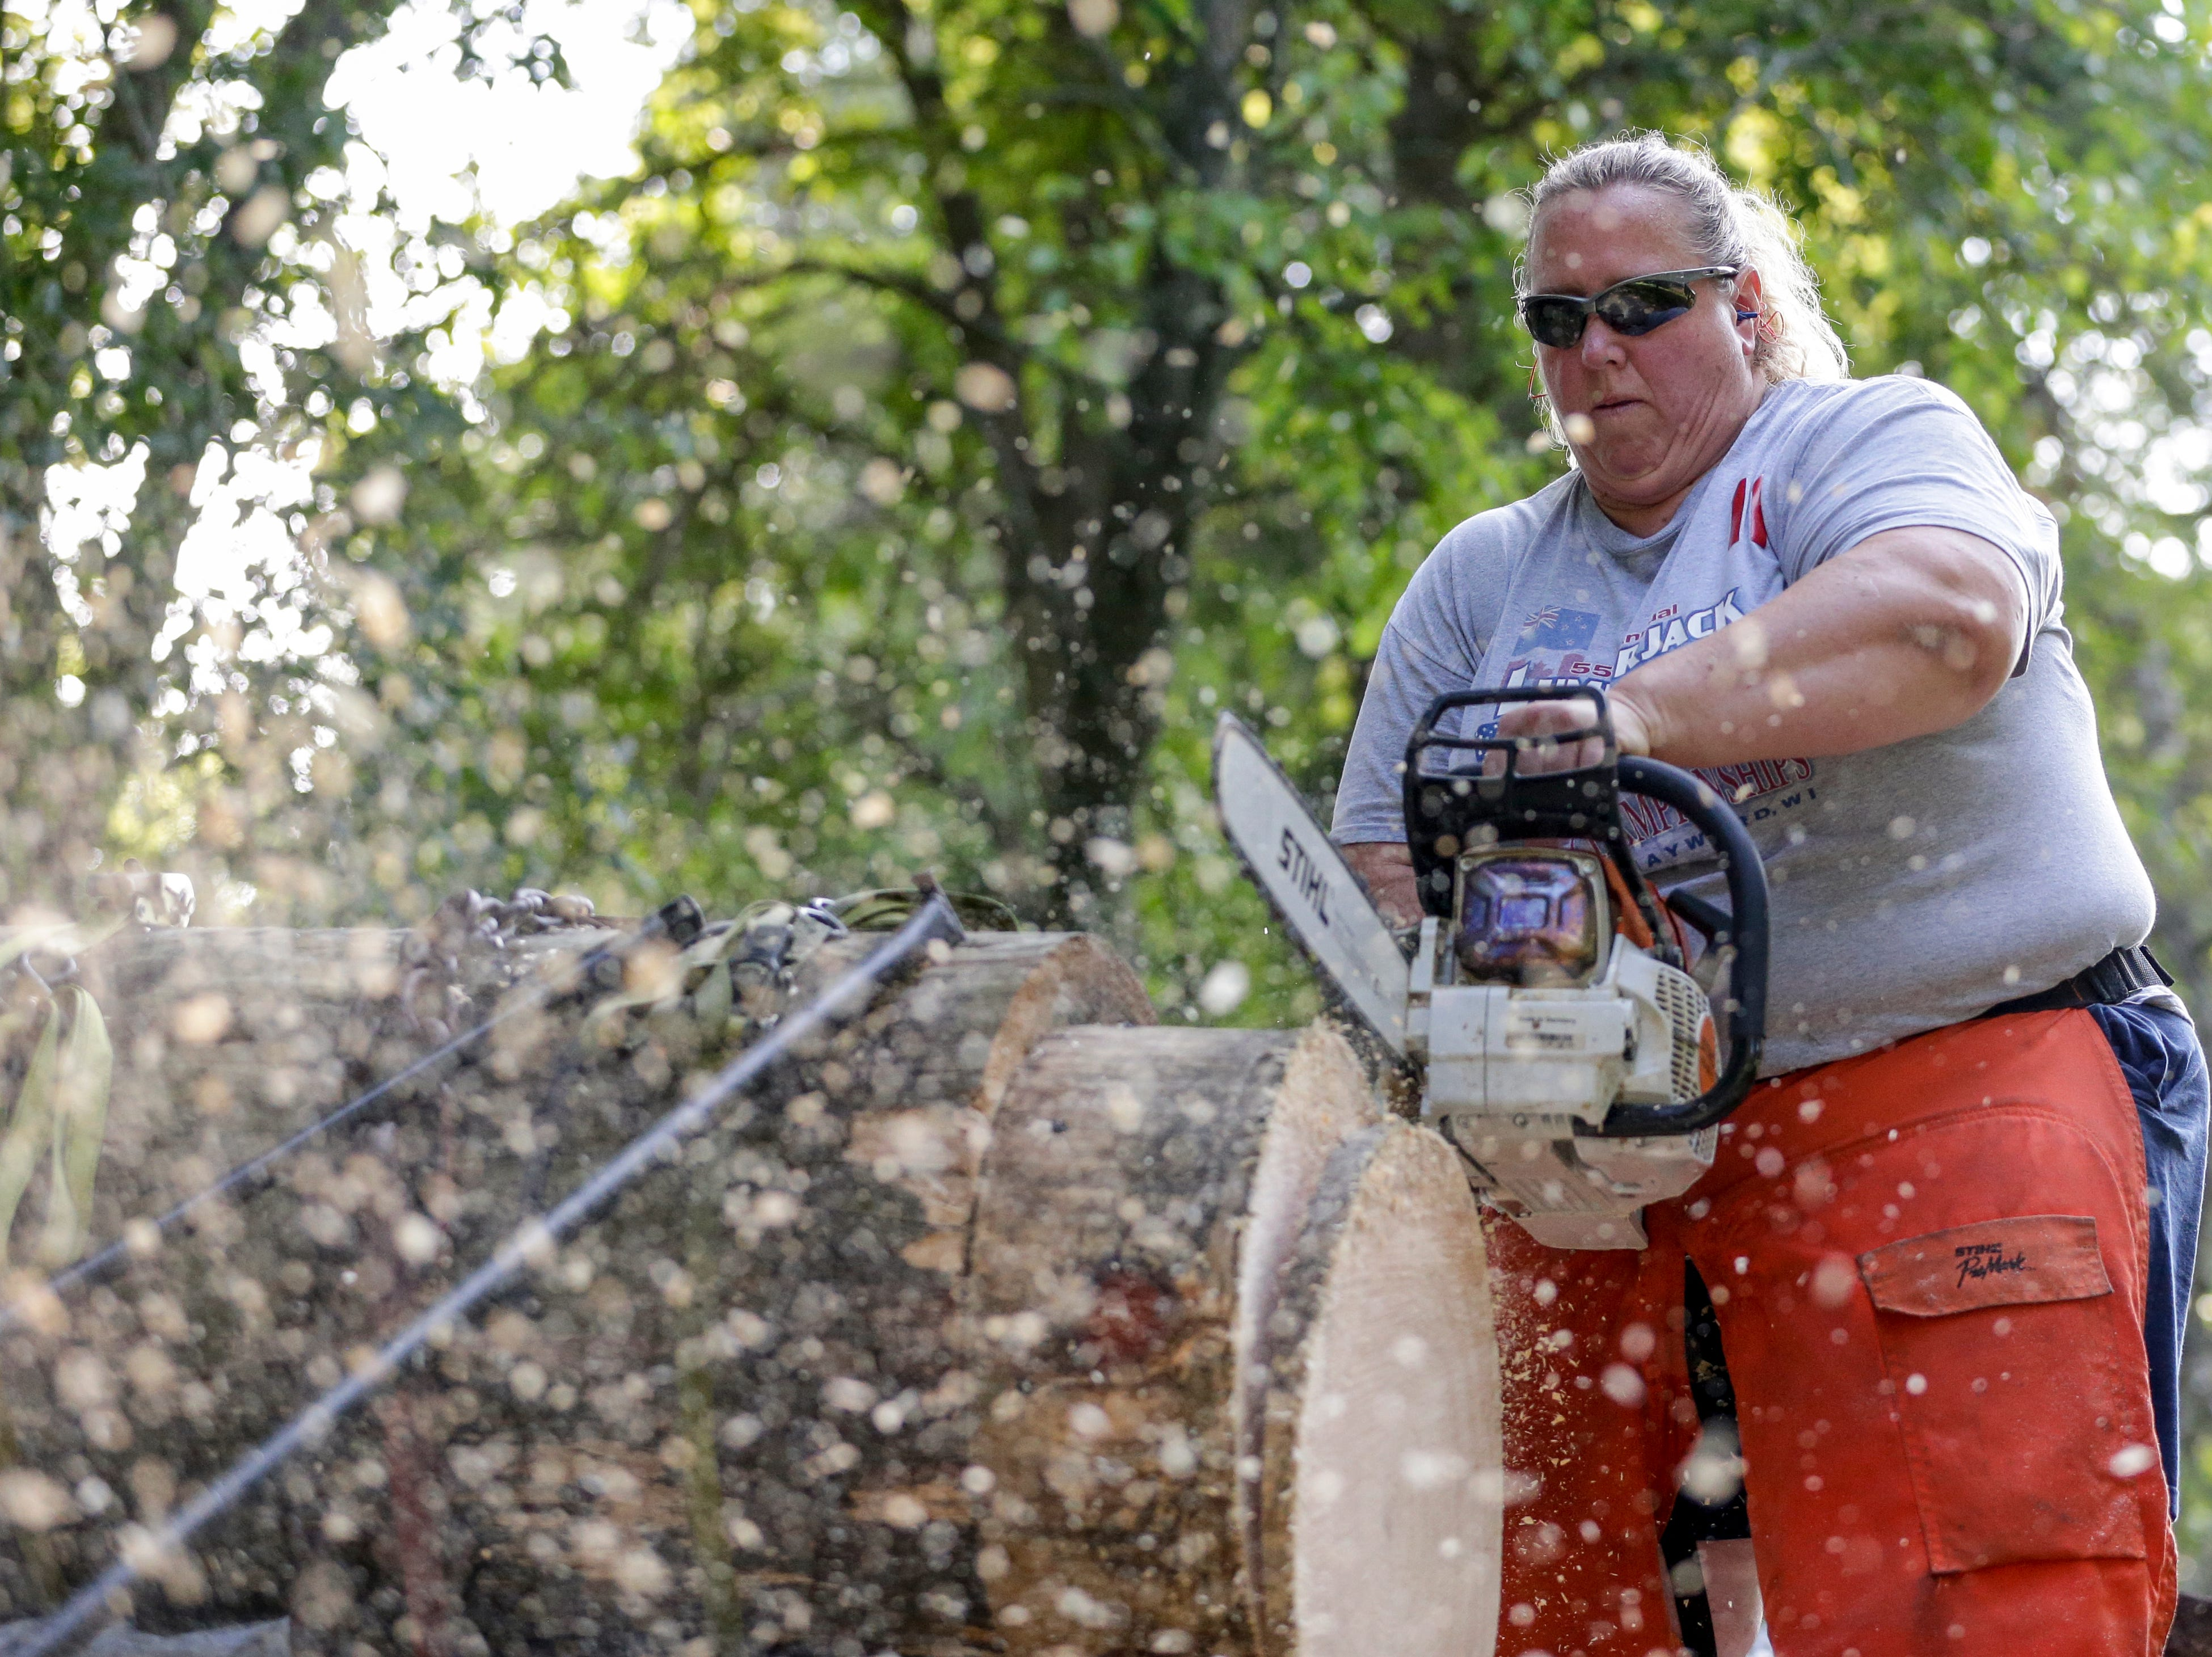 Nancy Zalewski practices her stock saw for an upcoming competition Thursday, August 9, 2018, in Manitowoc, Wis. Zalewski finished in third place at the 2018 Stihl Timbersports Women's Division Championship. Josh Clark/USA TODAY NETWORK-Wisconsin